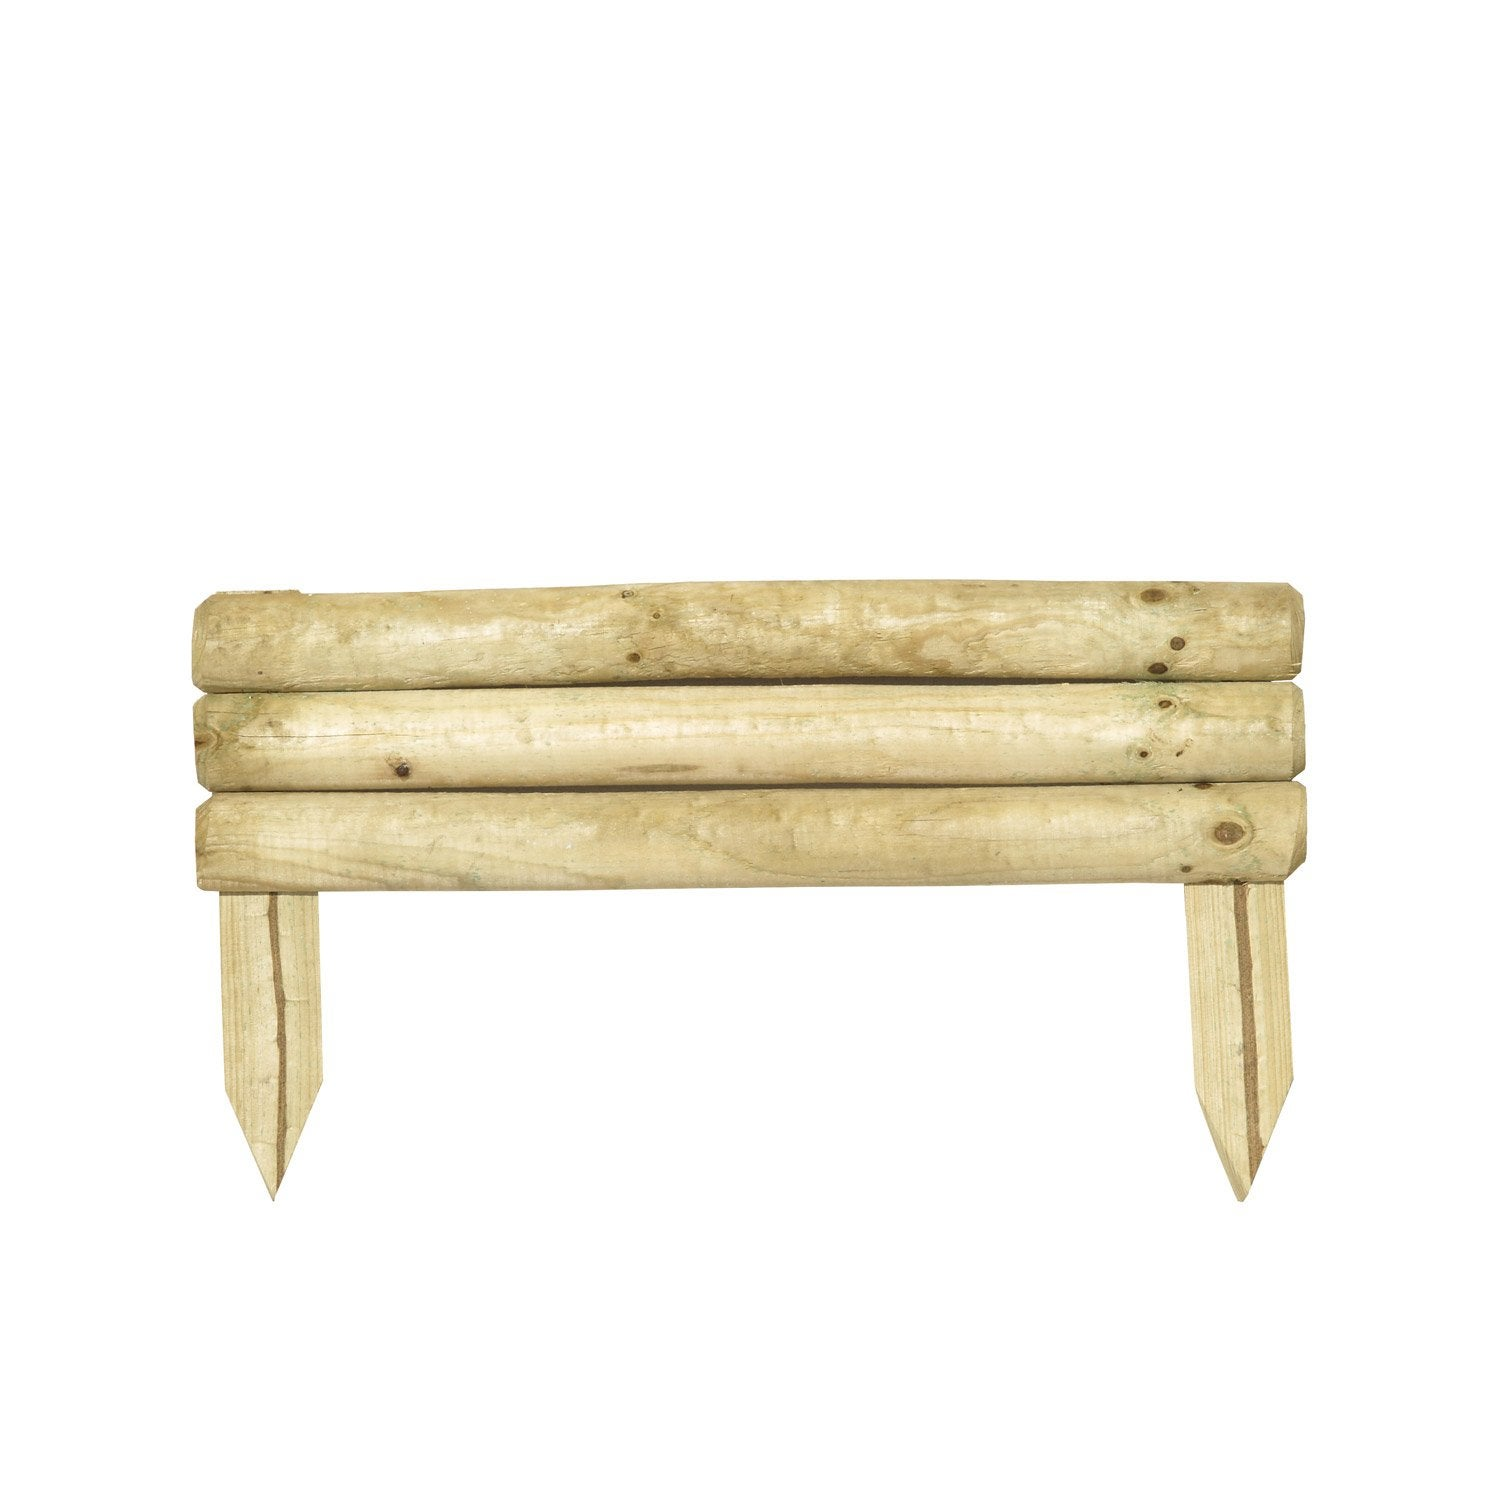 Bordure planter minitraverse bois naturel x - Bordures de jardin leroy merlin colombes ...